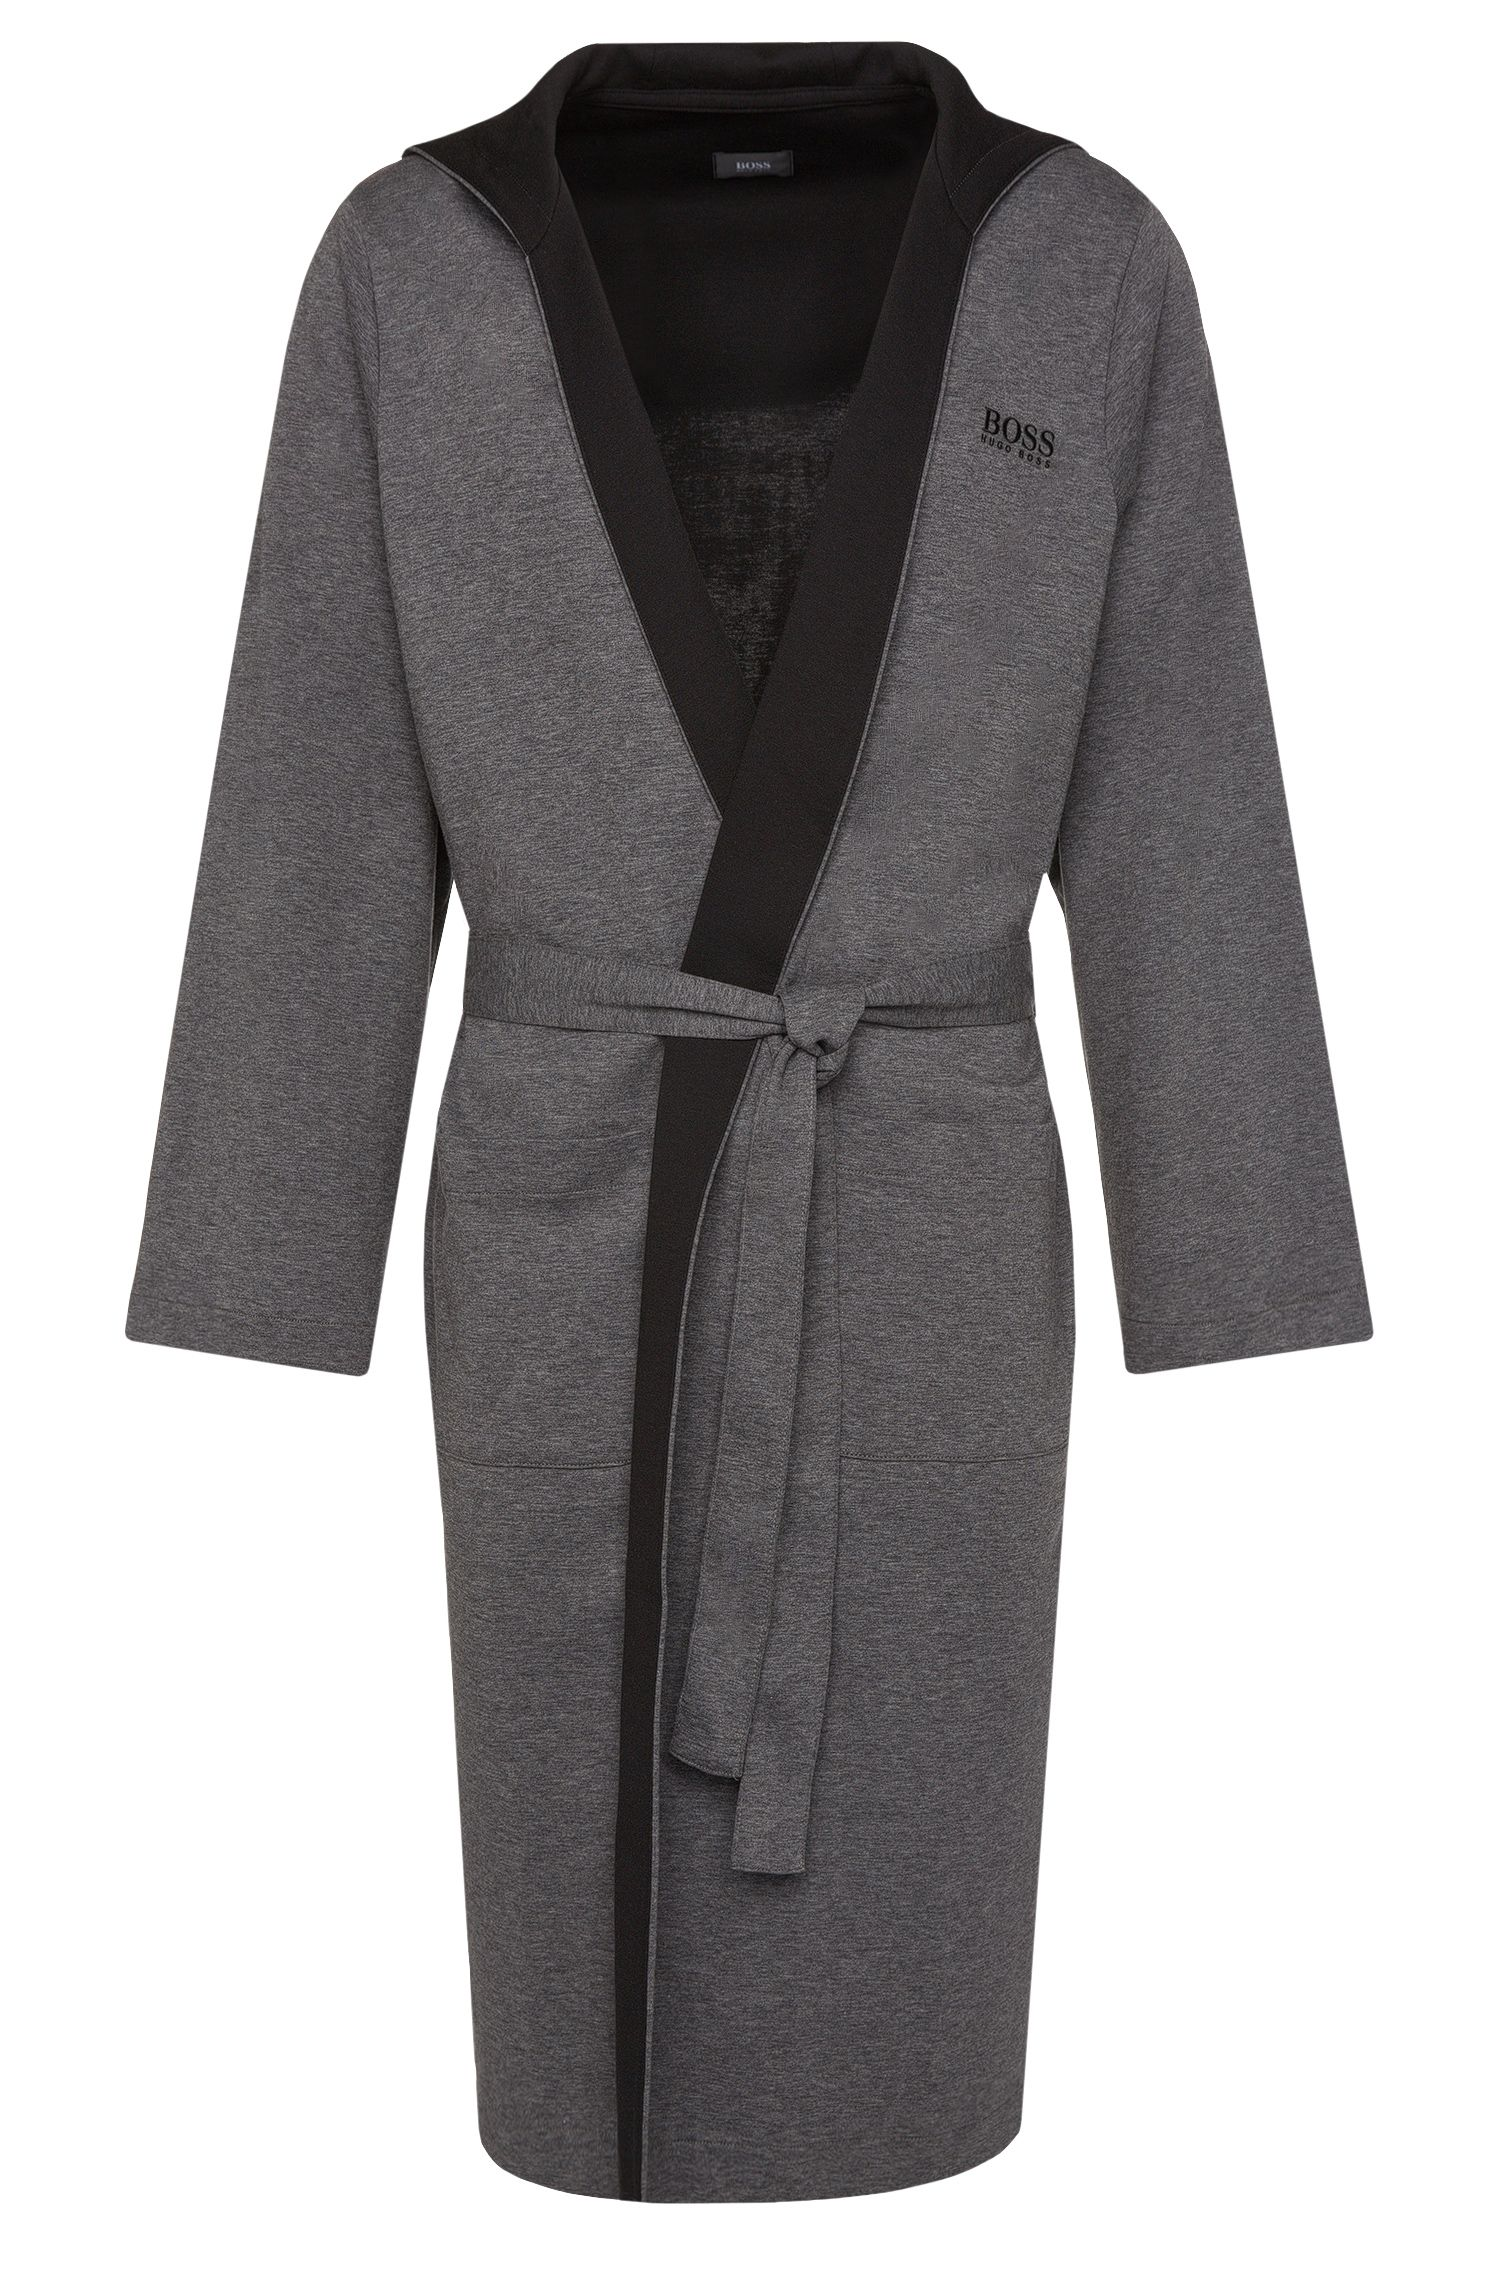 'Hooded Robe' | Cotton Blend Hooded Belted Robe